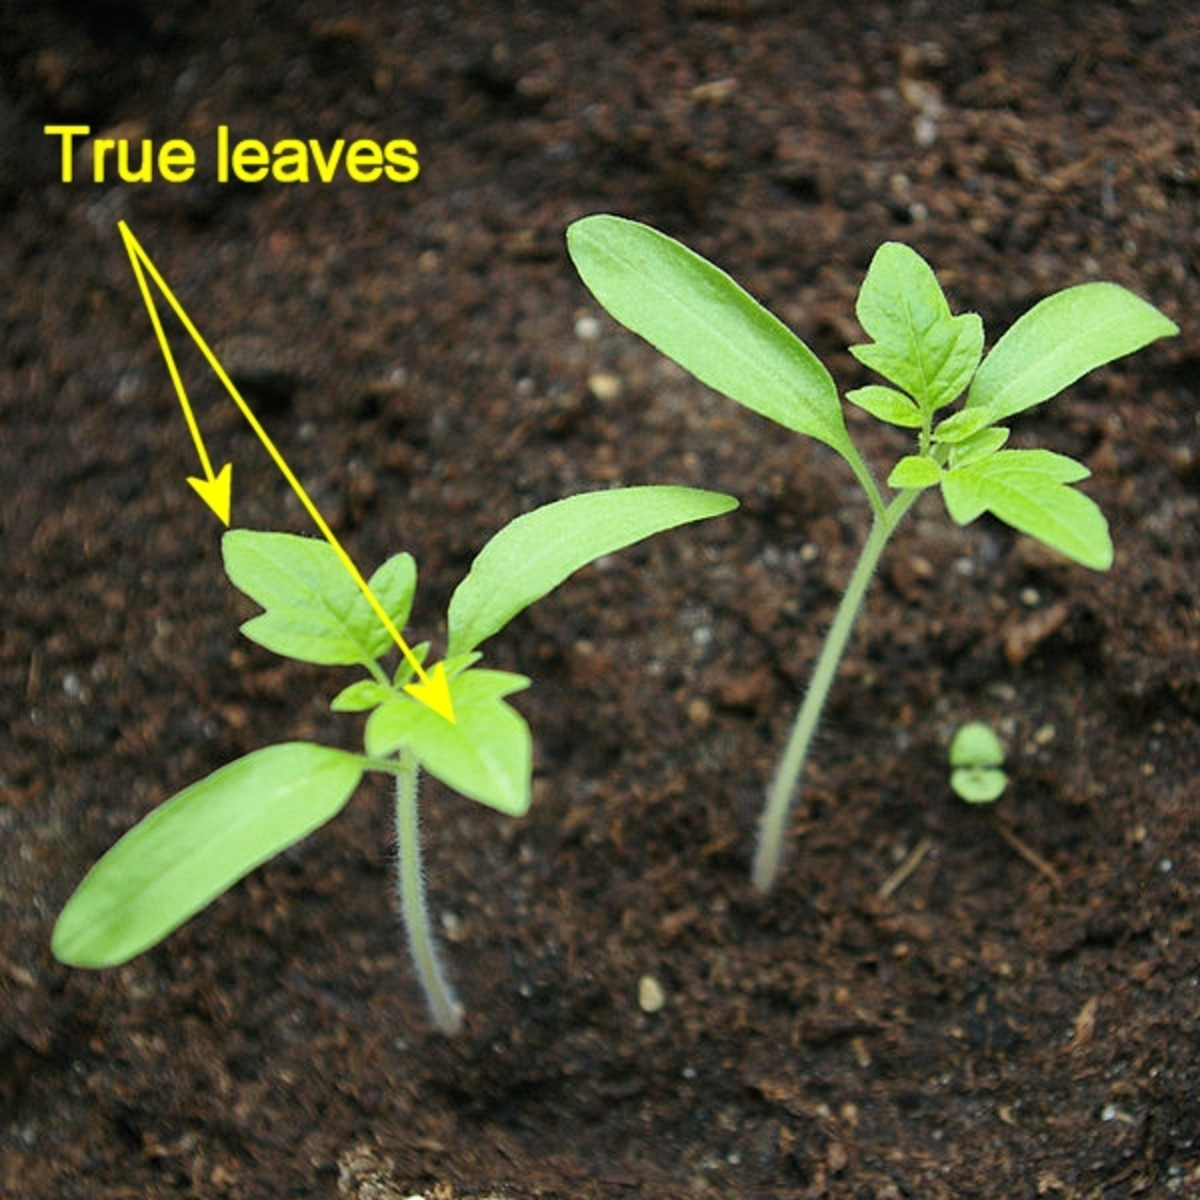 True leaves: When you see these, the seedling is ready for its own pot.